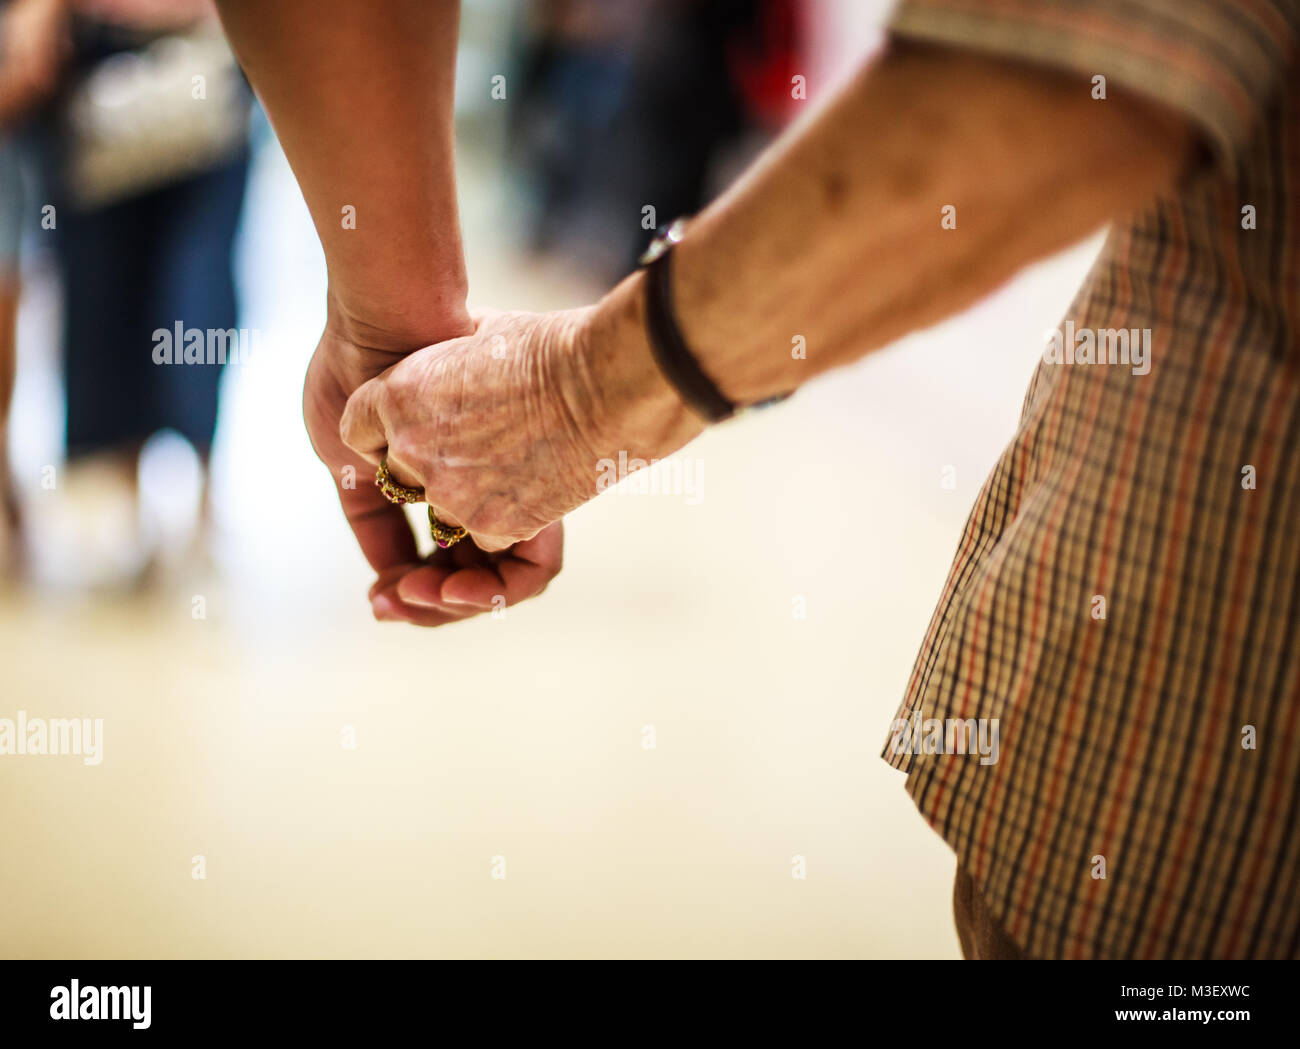 wrinkled elderly woman's hand holding to young man's hand, walking in shopping mall. Family Relation, Health, - Stock Image